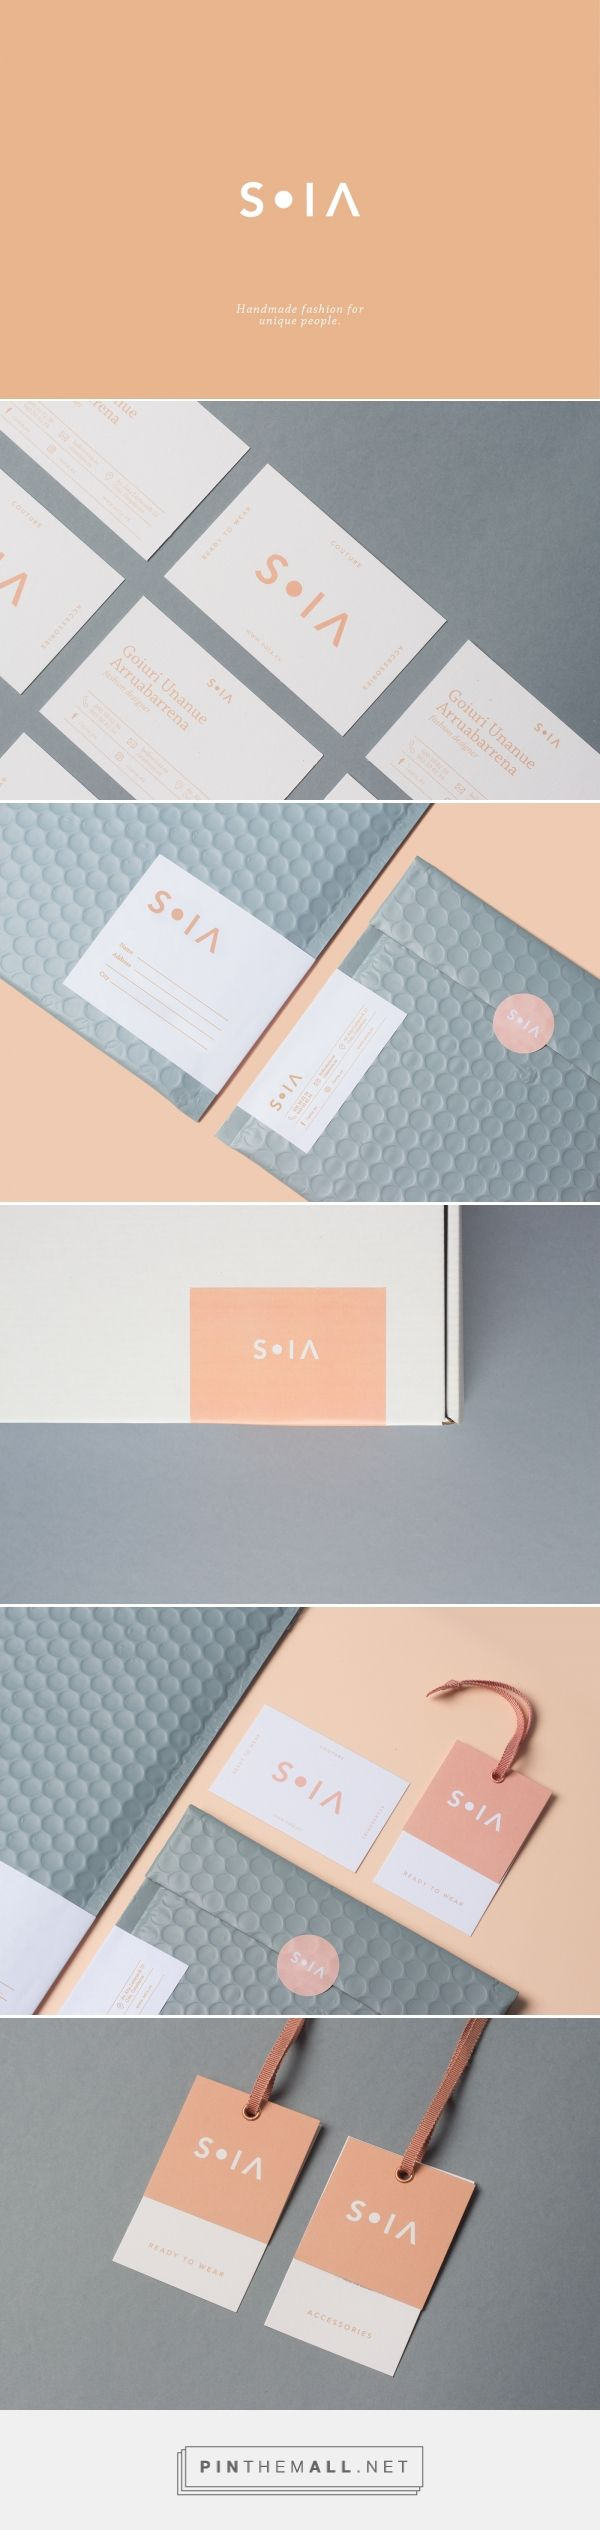 S O I A Fashion Branding by Nere Oria | Fivestar Branding Agency – Design and Branding Agency & Curated Inspiration Gallery #branding #brand #brandidentity #design #designinspiration #logo #fashionbrand